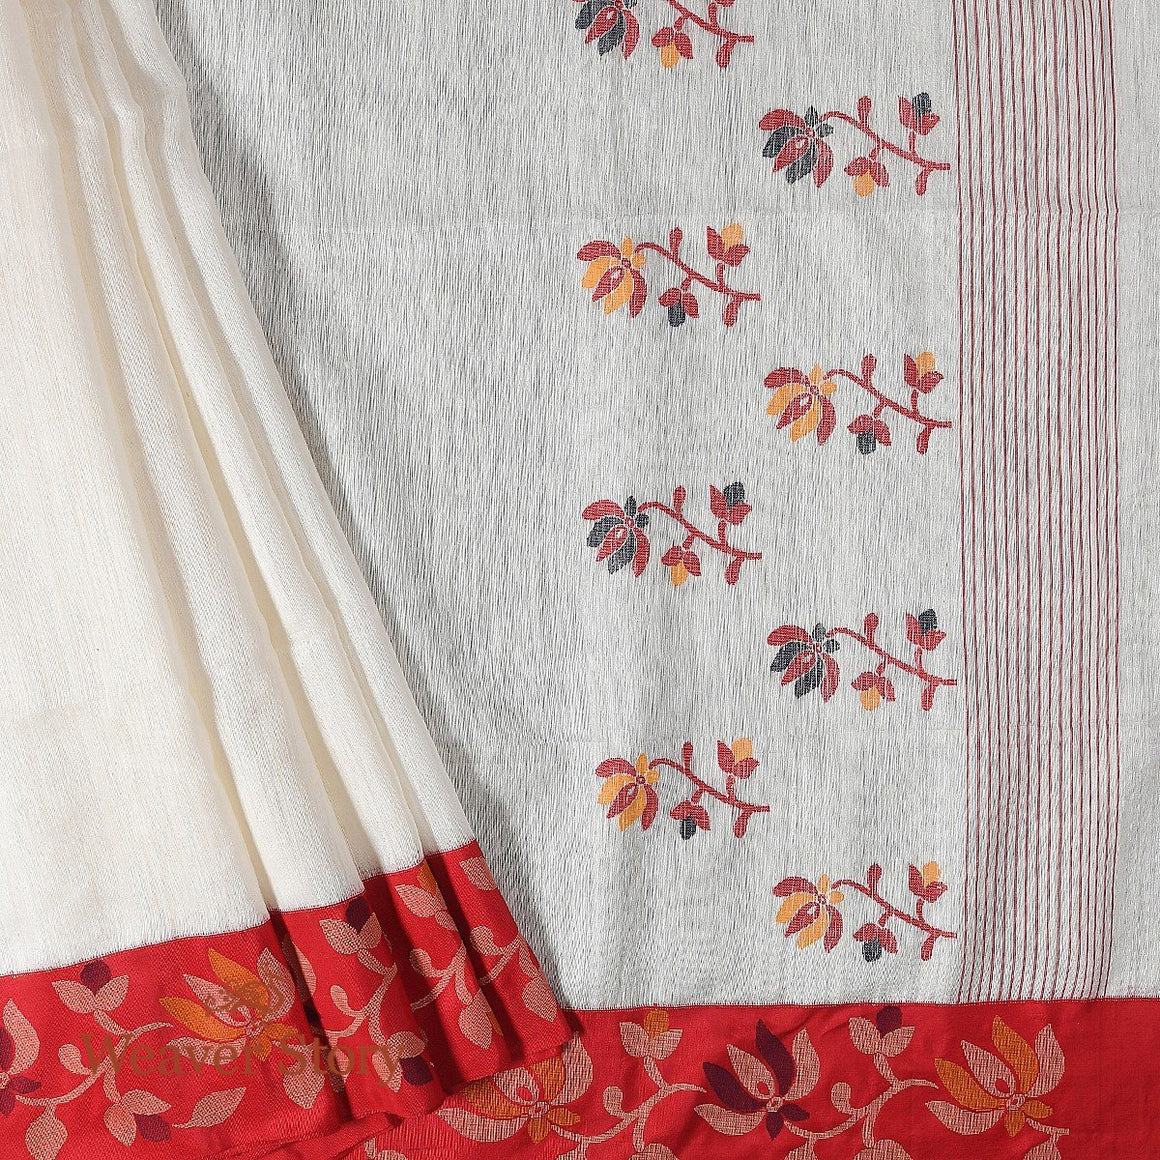 Handwoven Offwhite and Red Matka Silk Saree with Pure Silk Borders